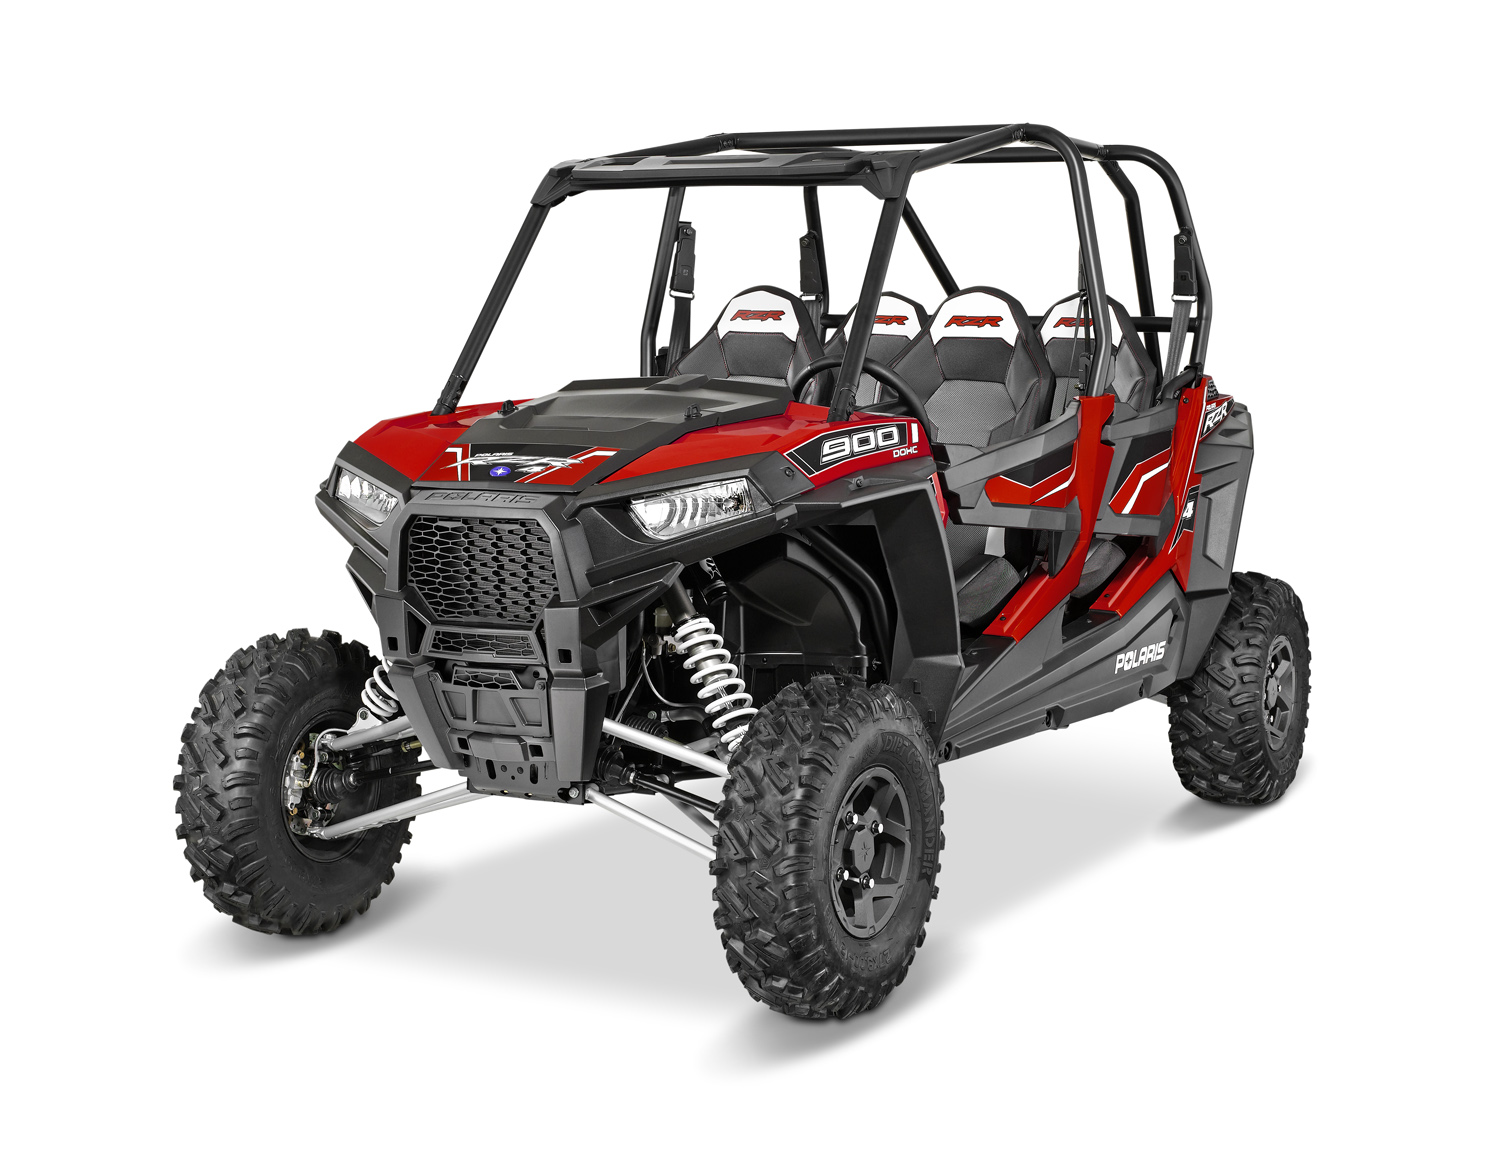 4 Seater Atv All New Car Release And Reviews 2013 Polaris 200 Phoenix Wiring Diagram Has A Utv Action